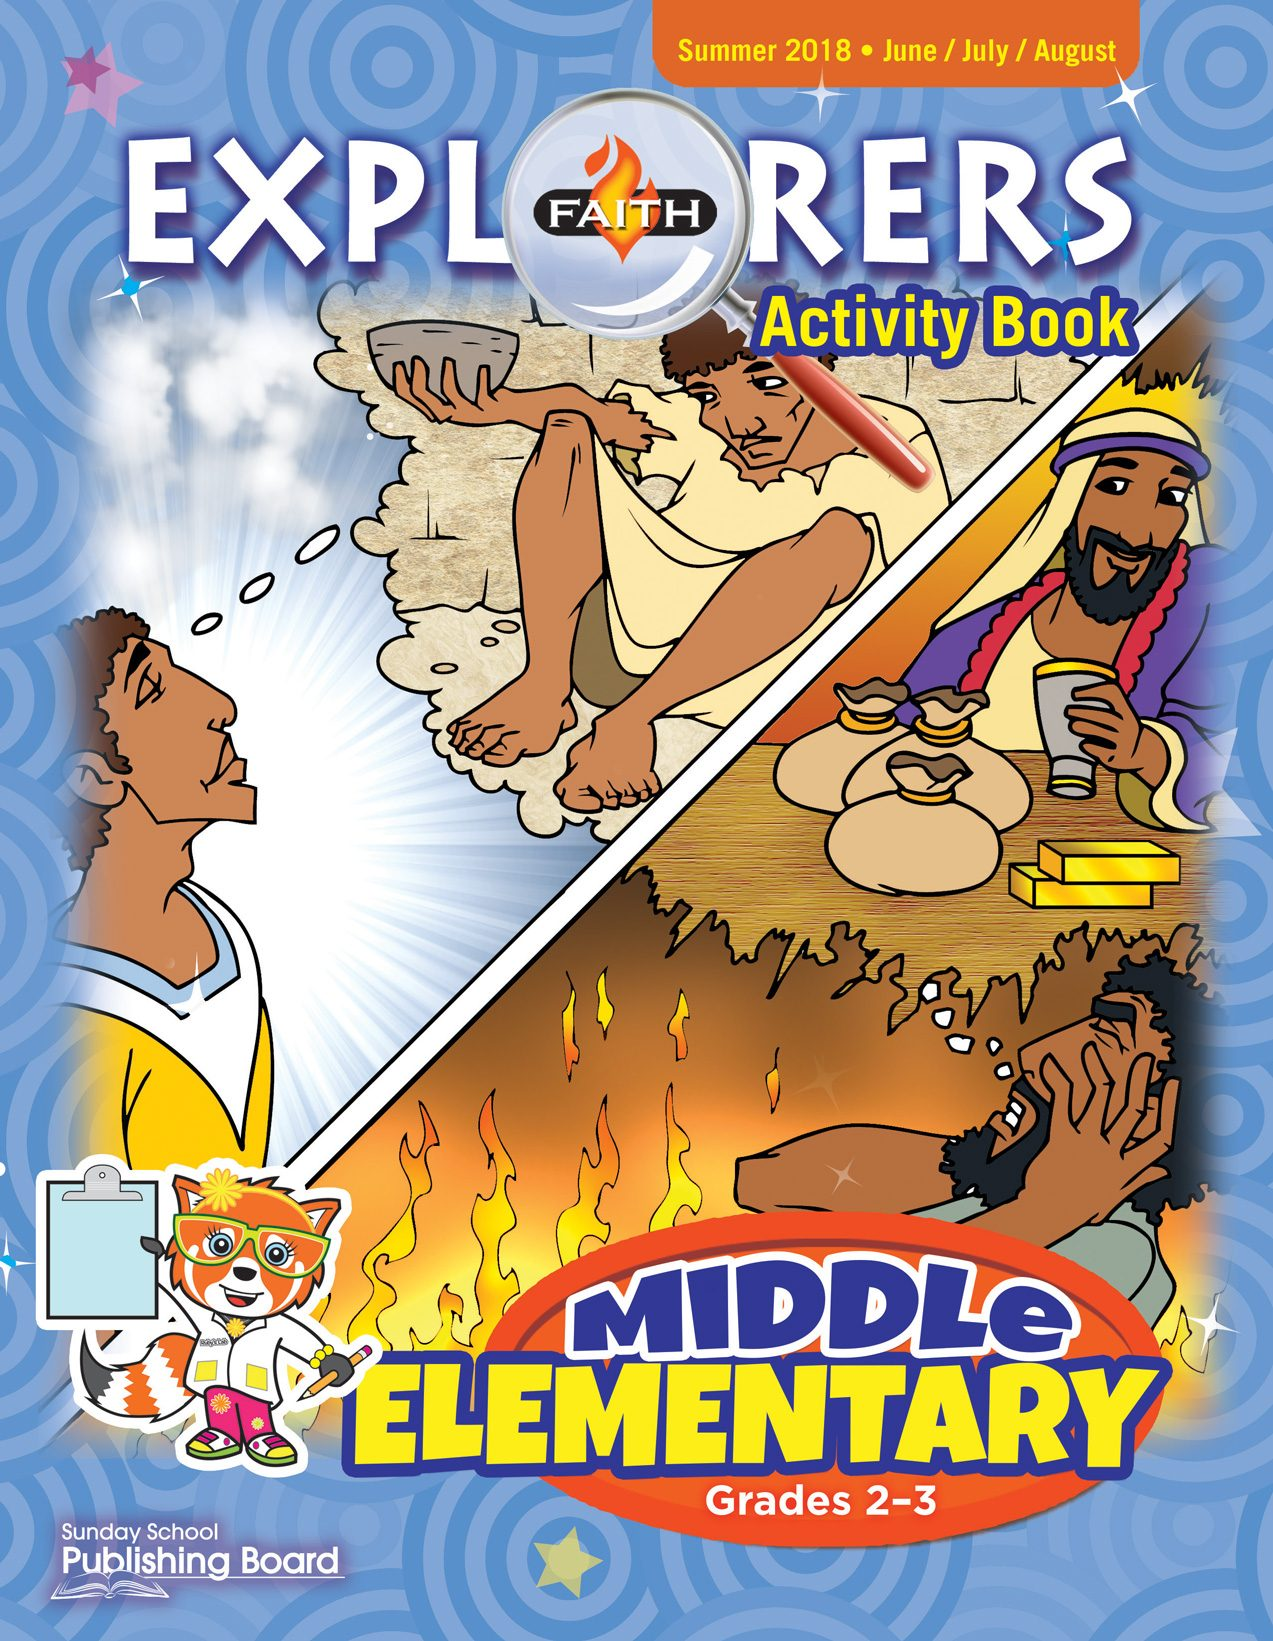 Faith Explorers Activity Book, Middle Elementary for Grades 2-3 (Summer 2018)-Digital Edition